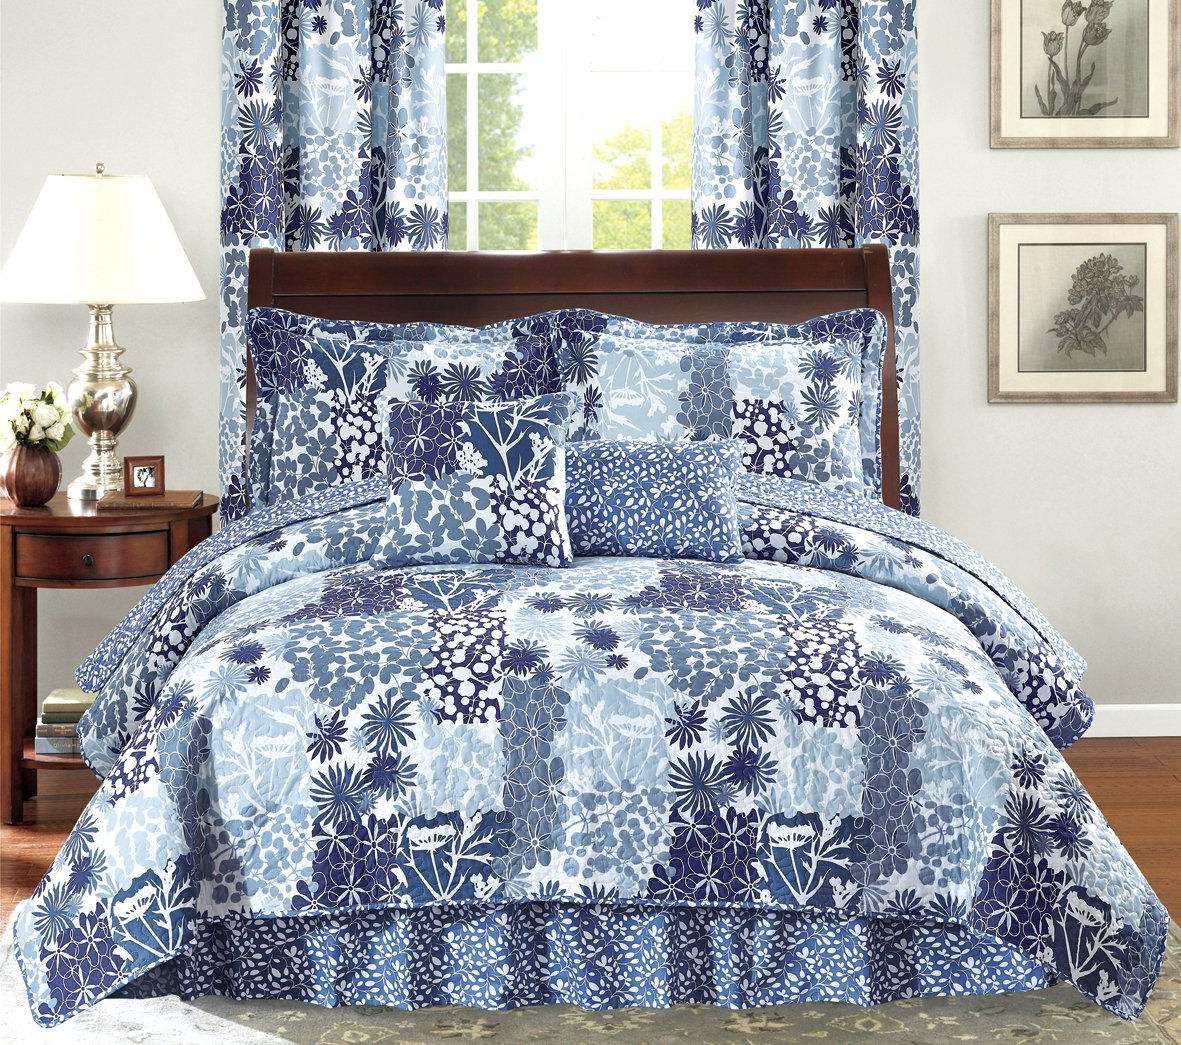 All American Collection New 6pc Printed Reversible Bedspread Set with Dust Ruffle KING 6PC, NAVY BLUE/ LIGHT BLUE